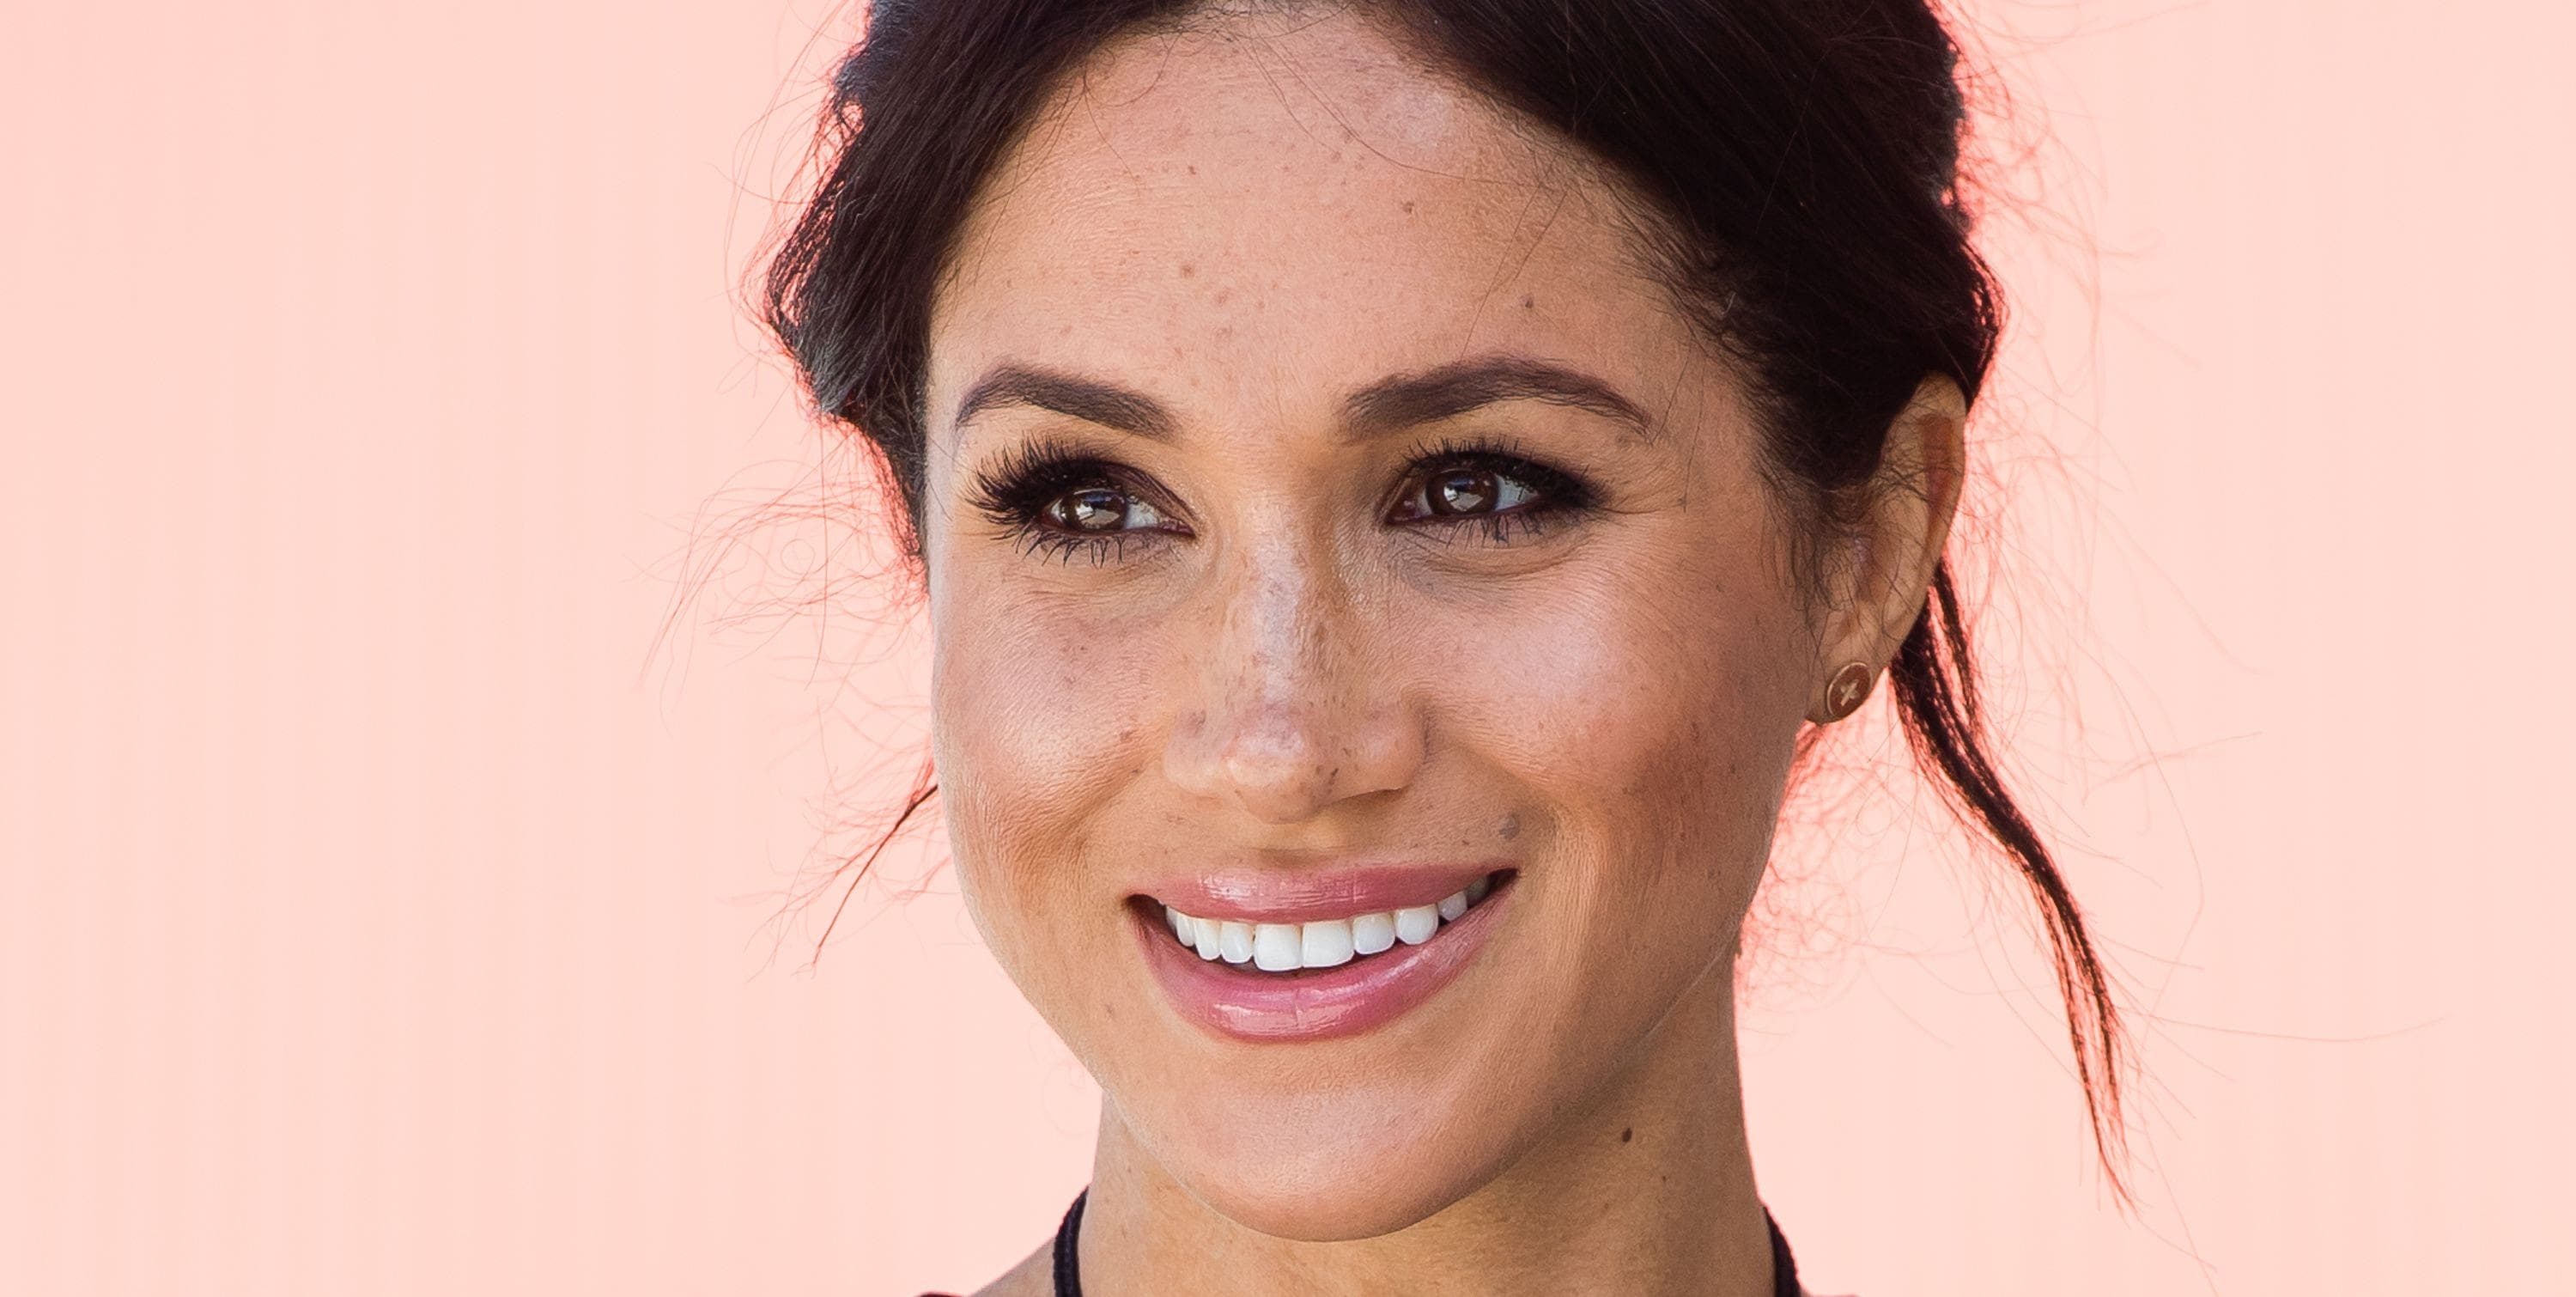 meghan markle smiling, displaying her facial freckles.